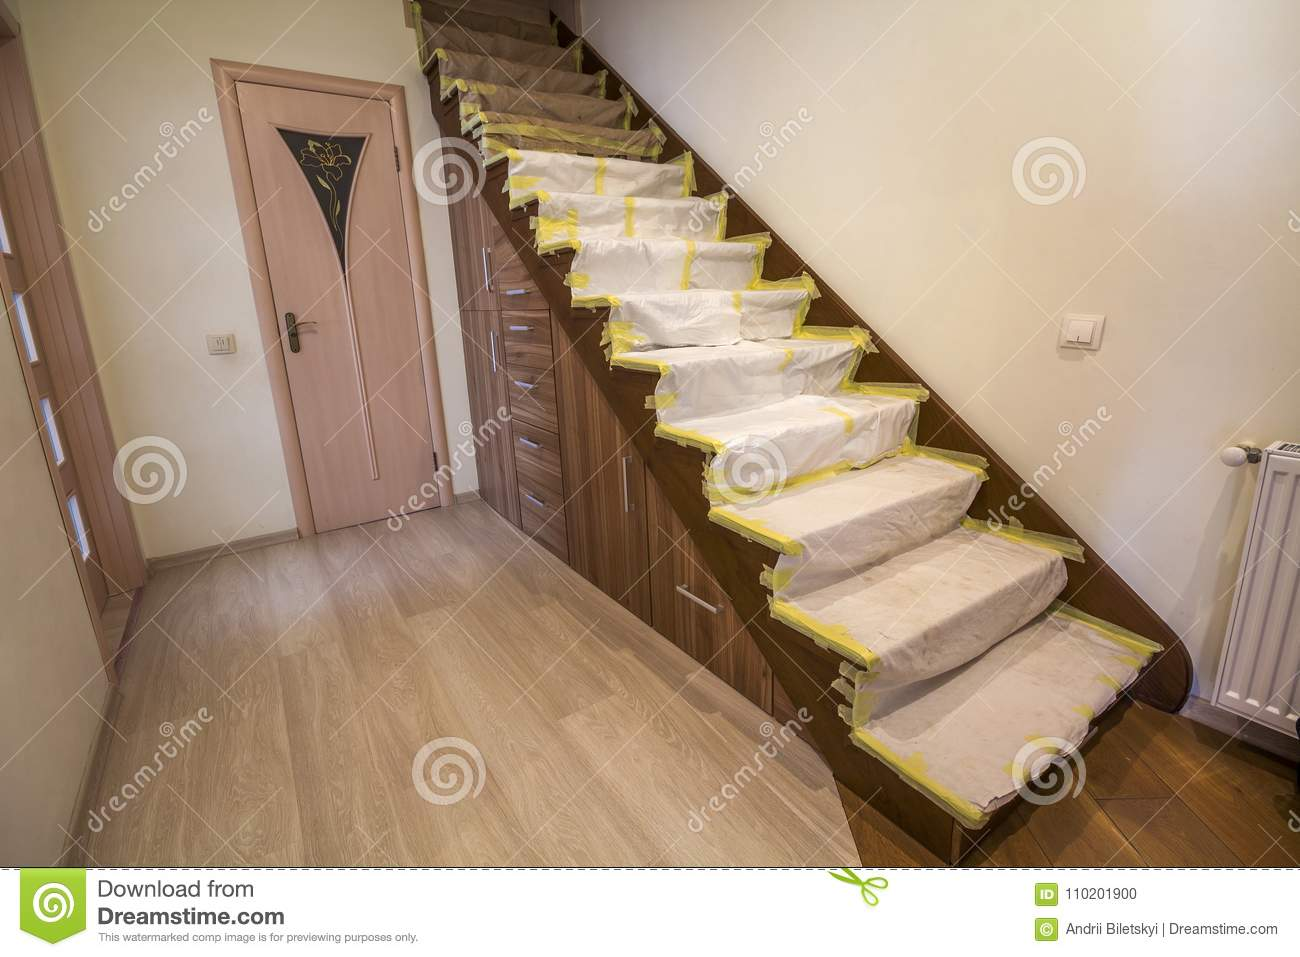 Download Home Interior With Wooden Oak Staircase Covered With Protective  Cloth Cover During Renovation Works.